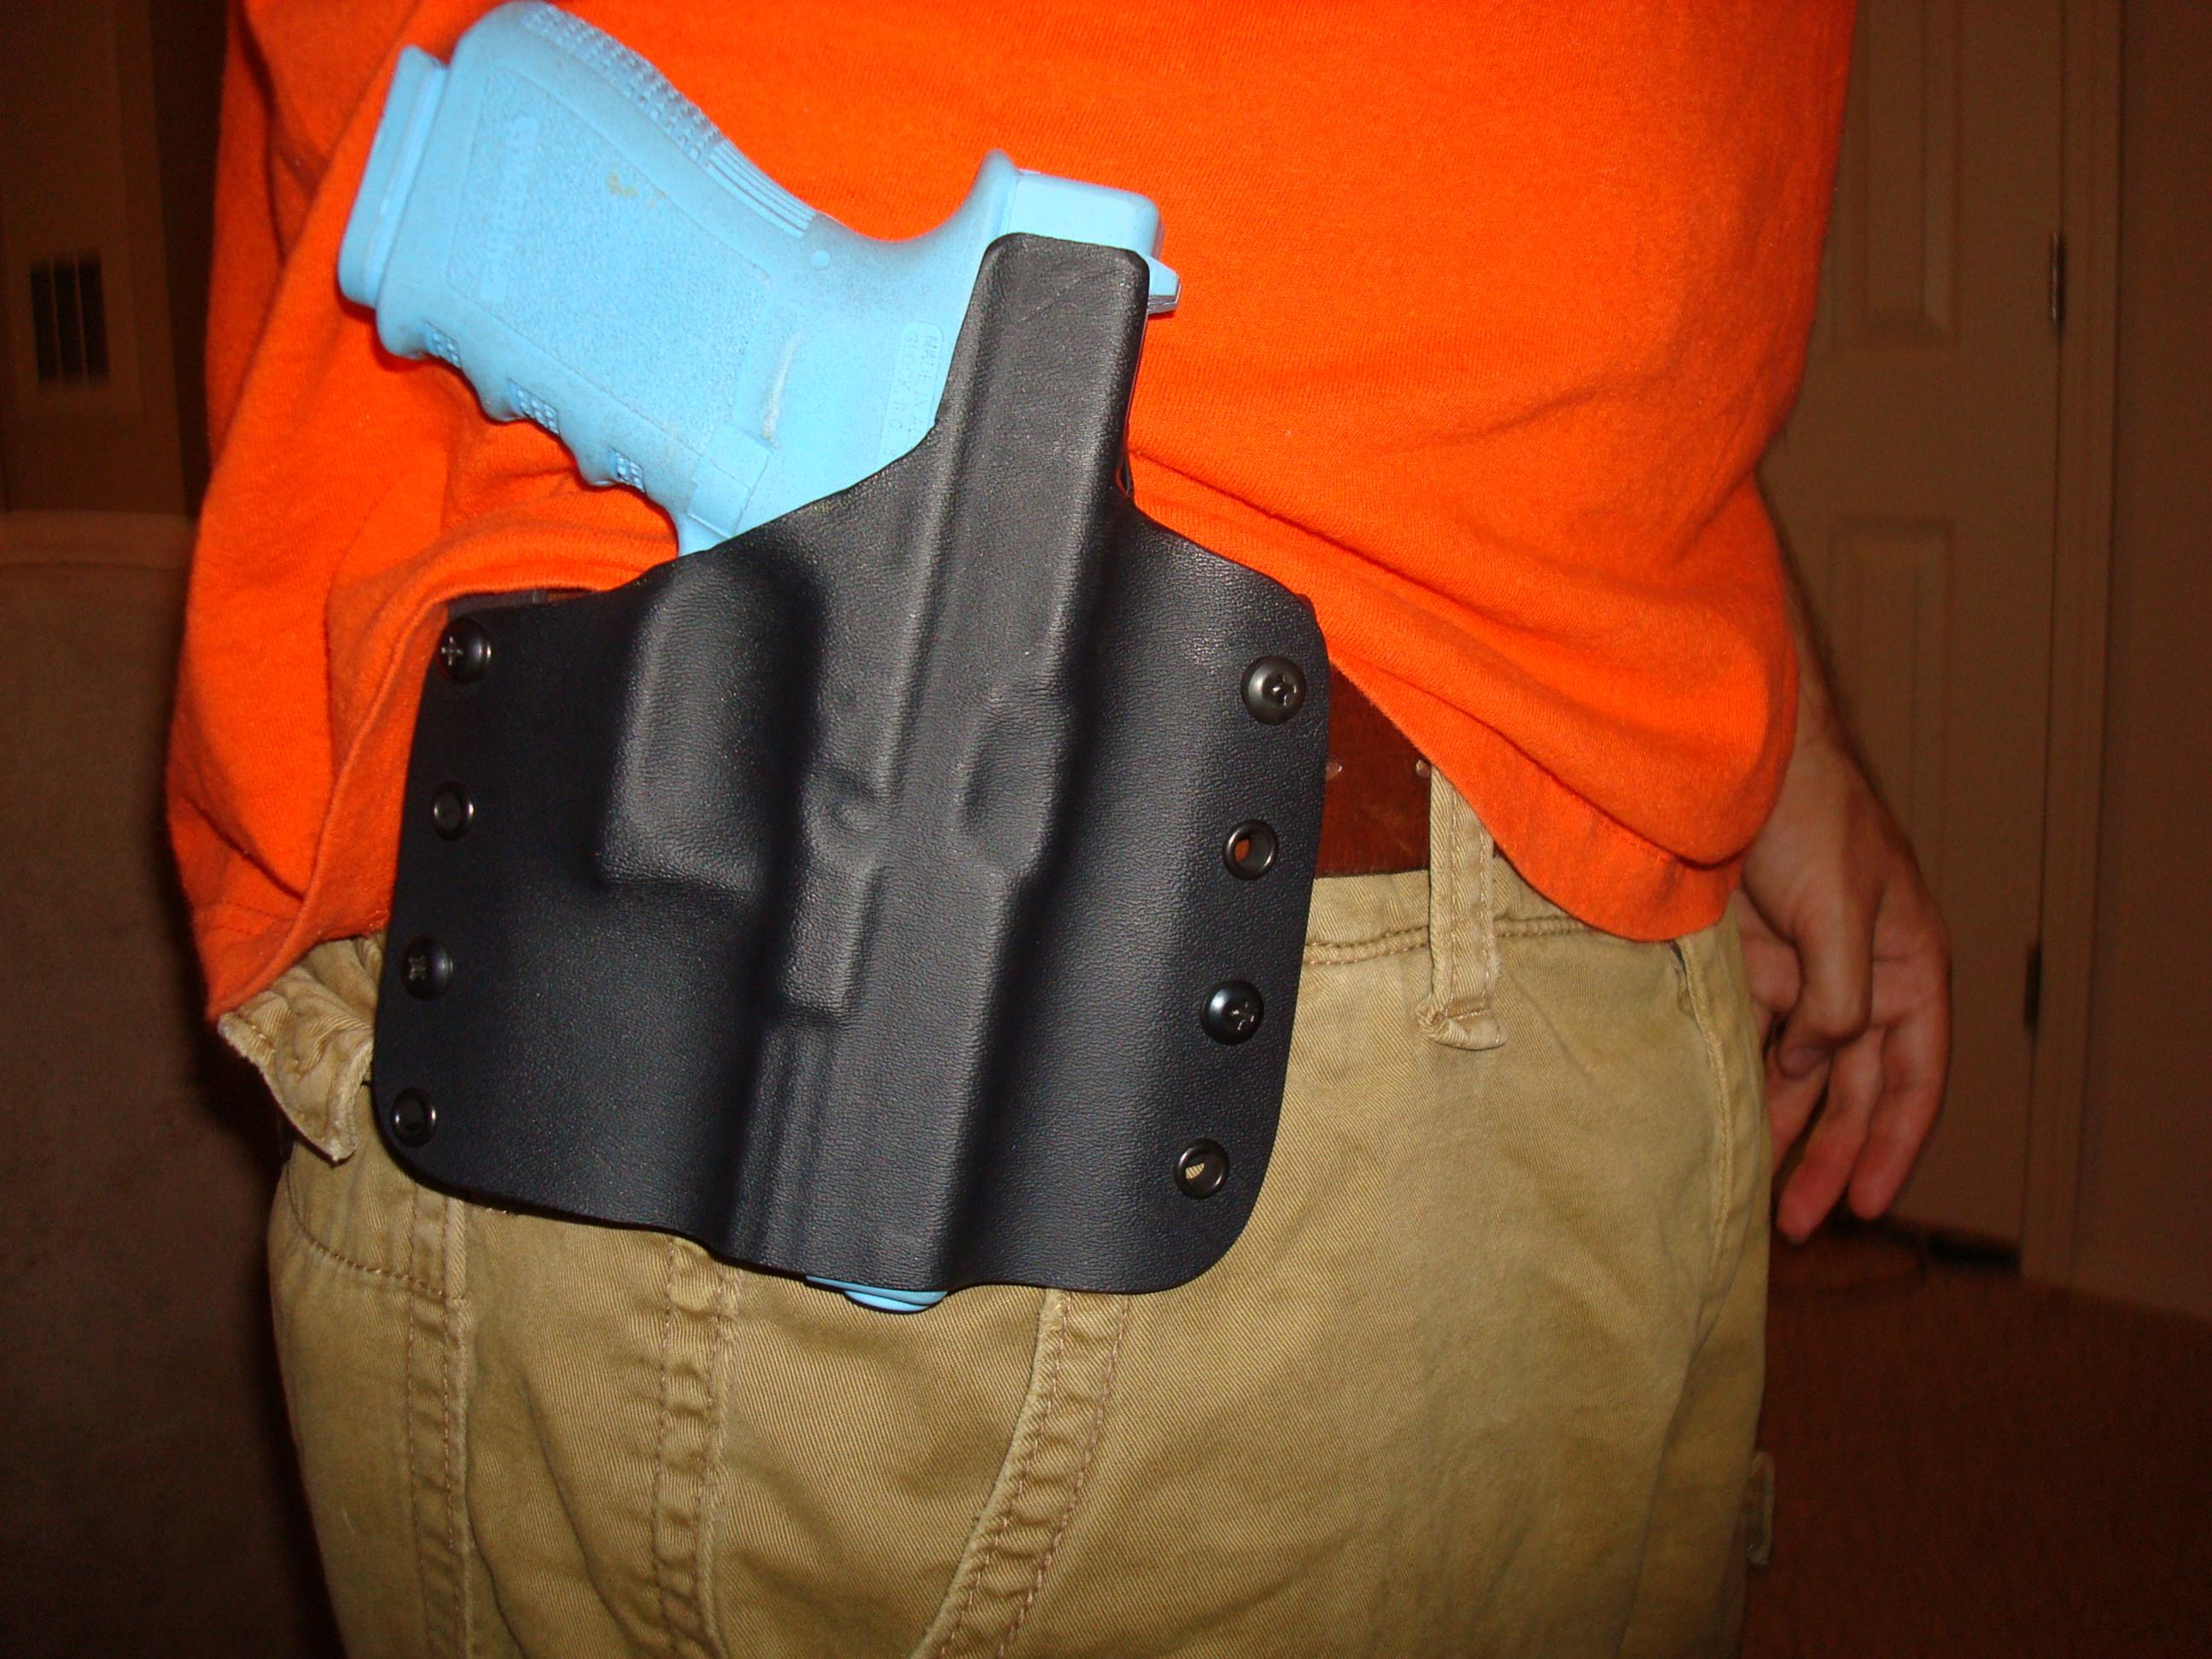 Custom kydex holsters!!-dsc02688.jpg